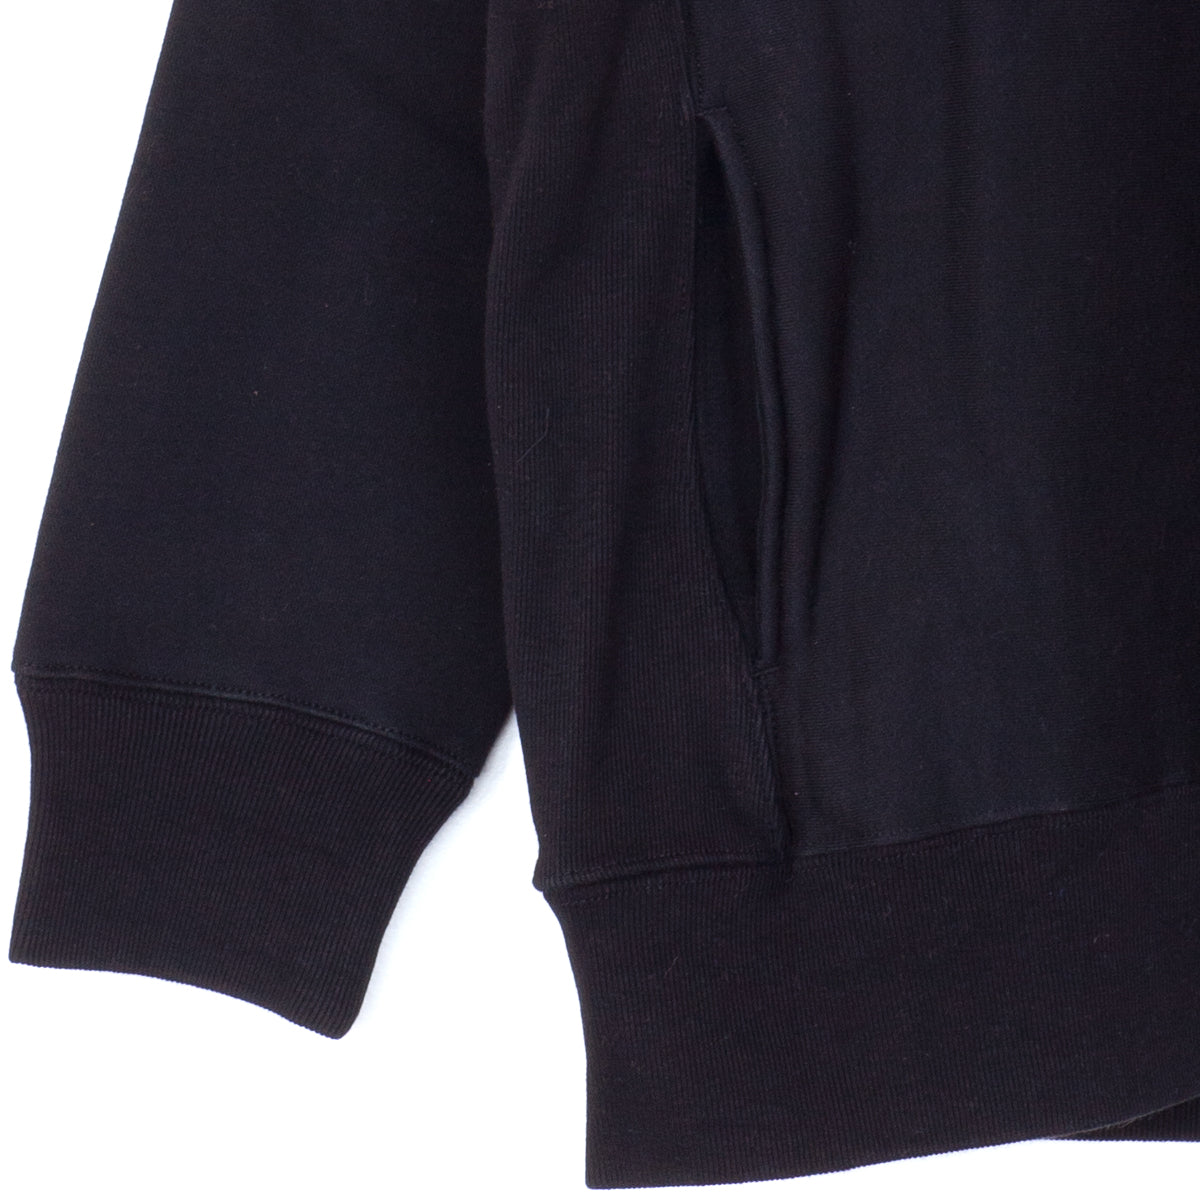 Mockneck Pocket Sweatshirt